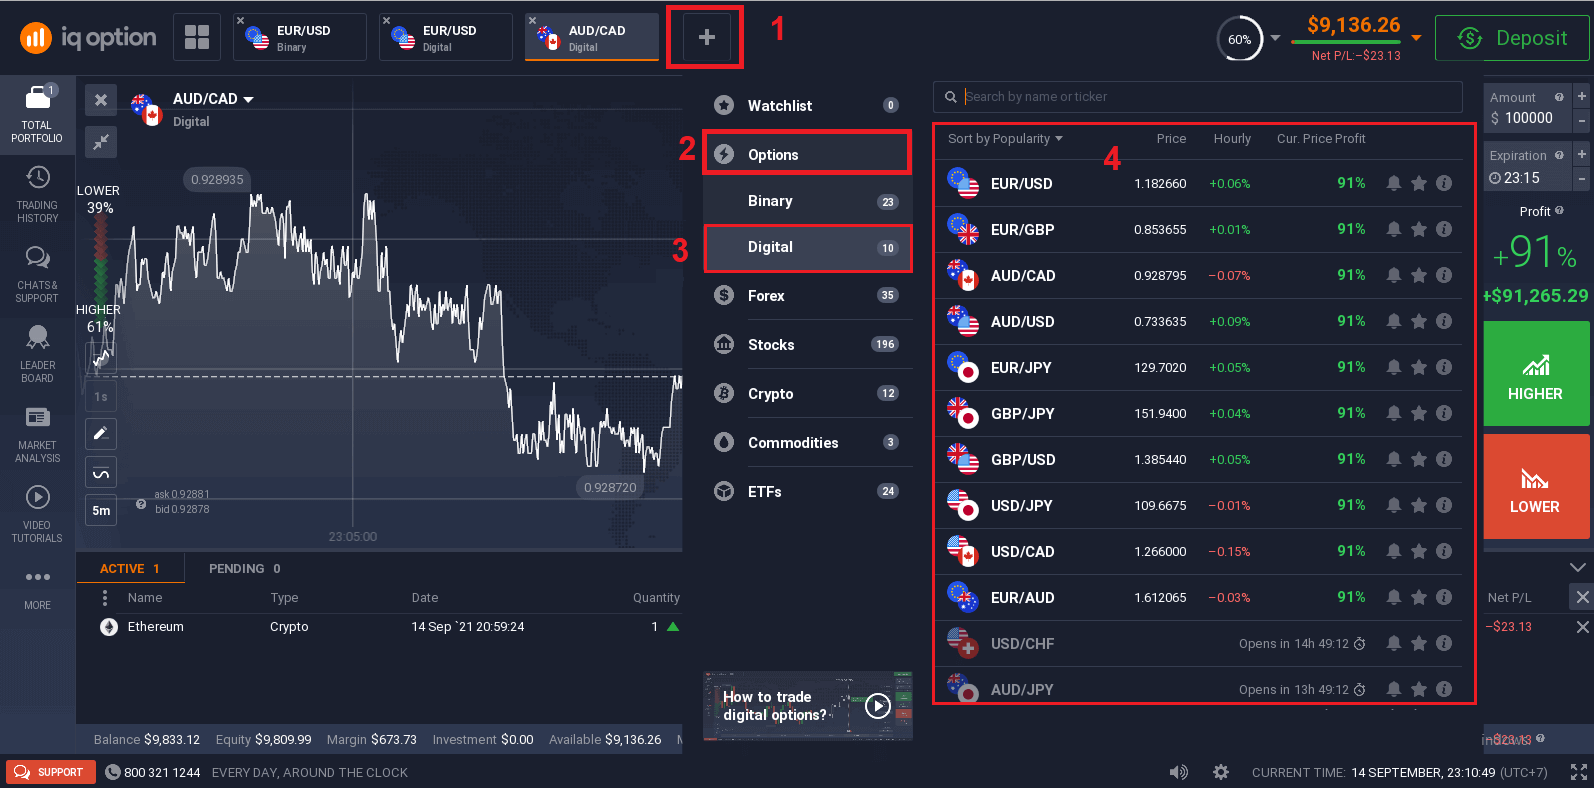 How to Trade Digital Options in IQ Option